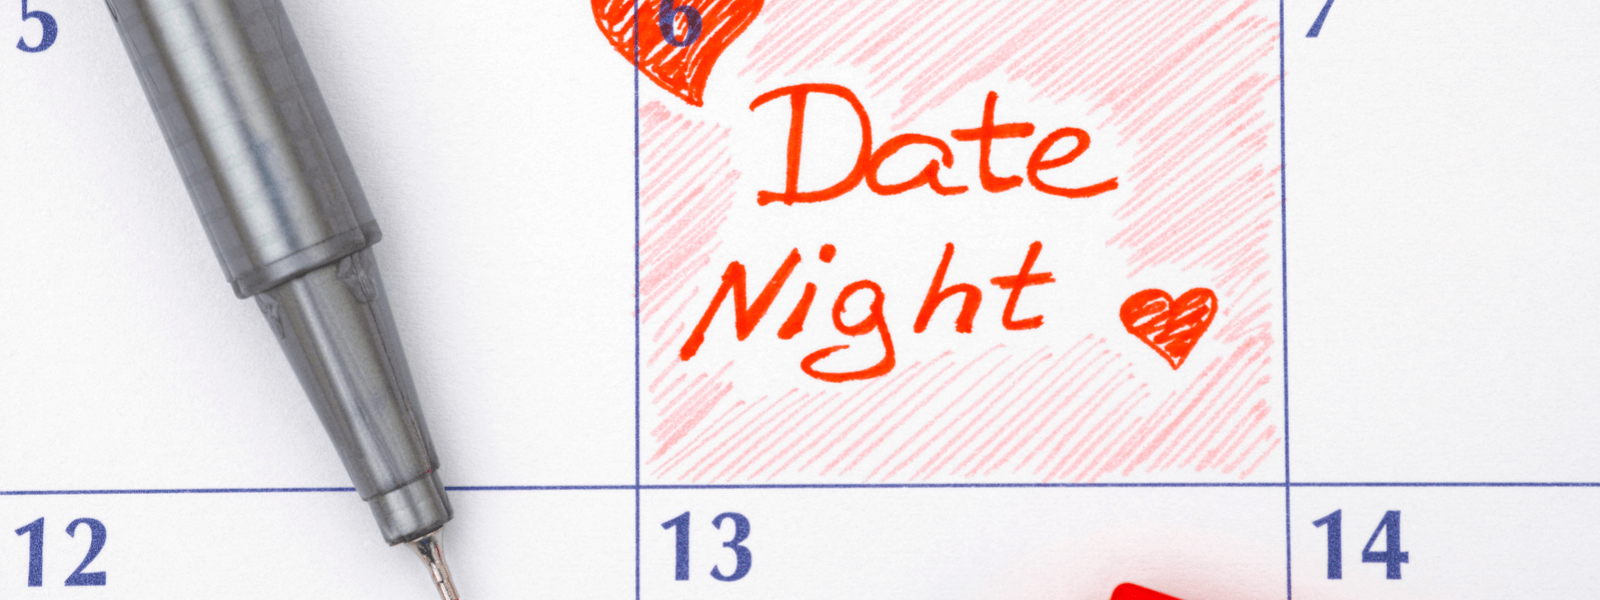 25 Easy At Home Date Night Ideas!